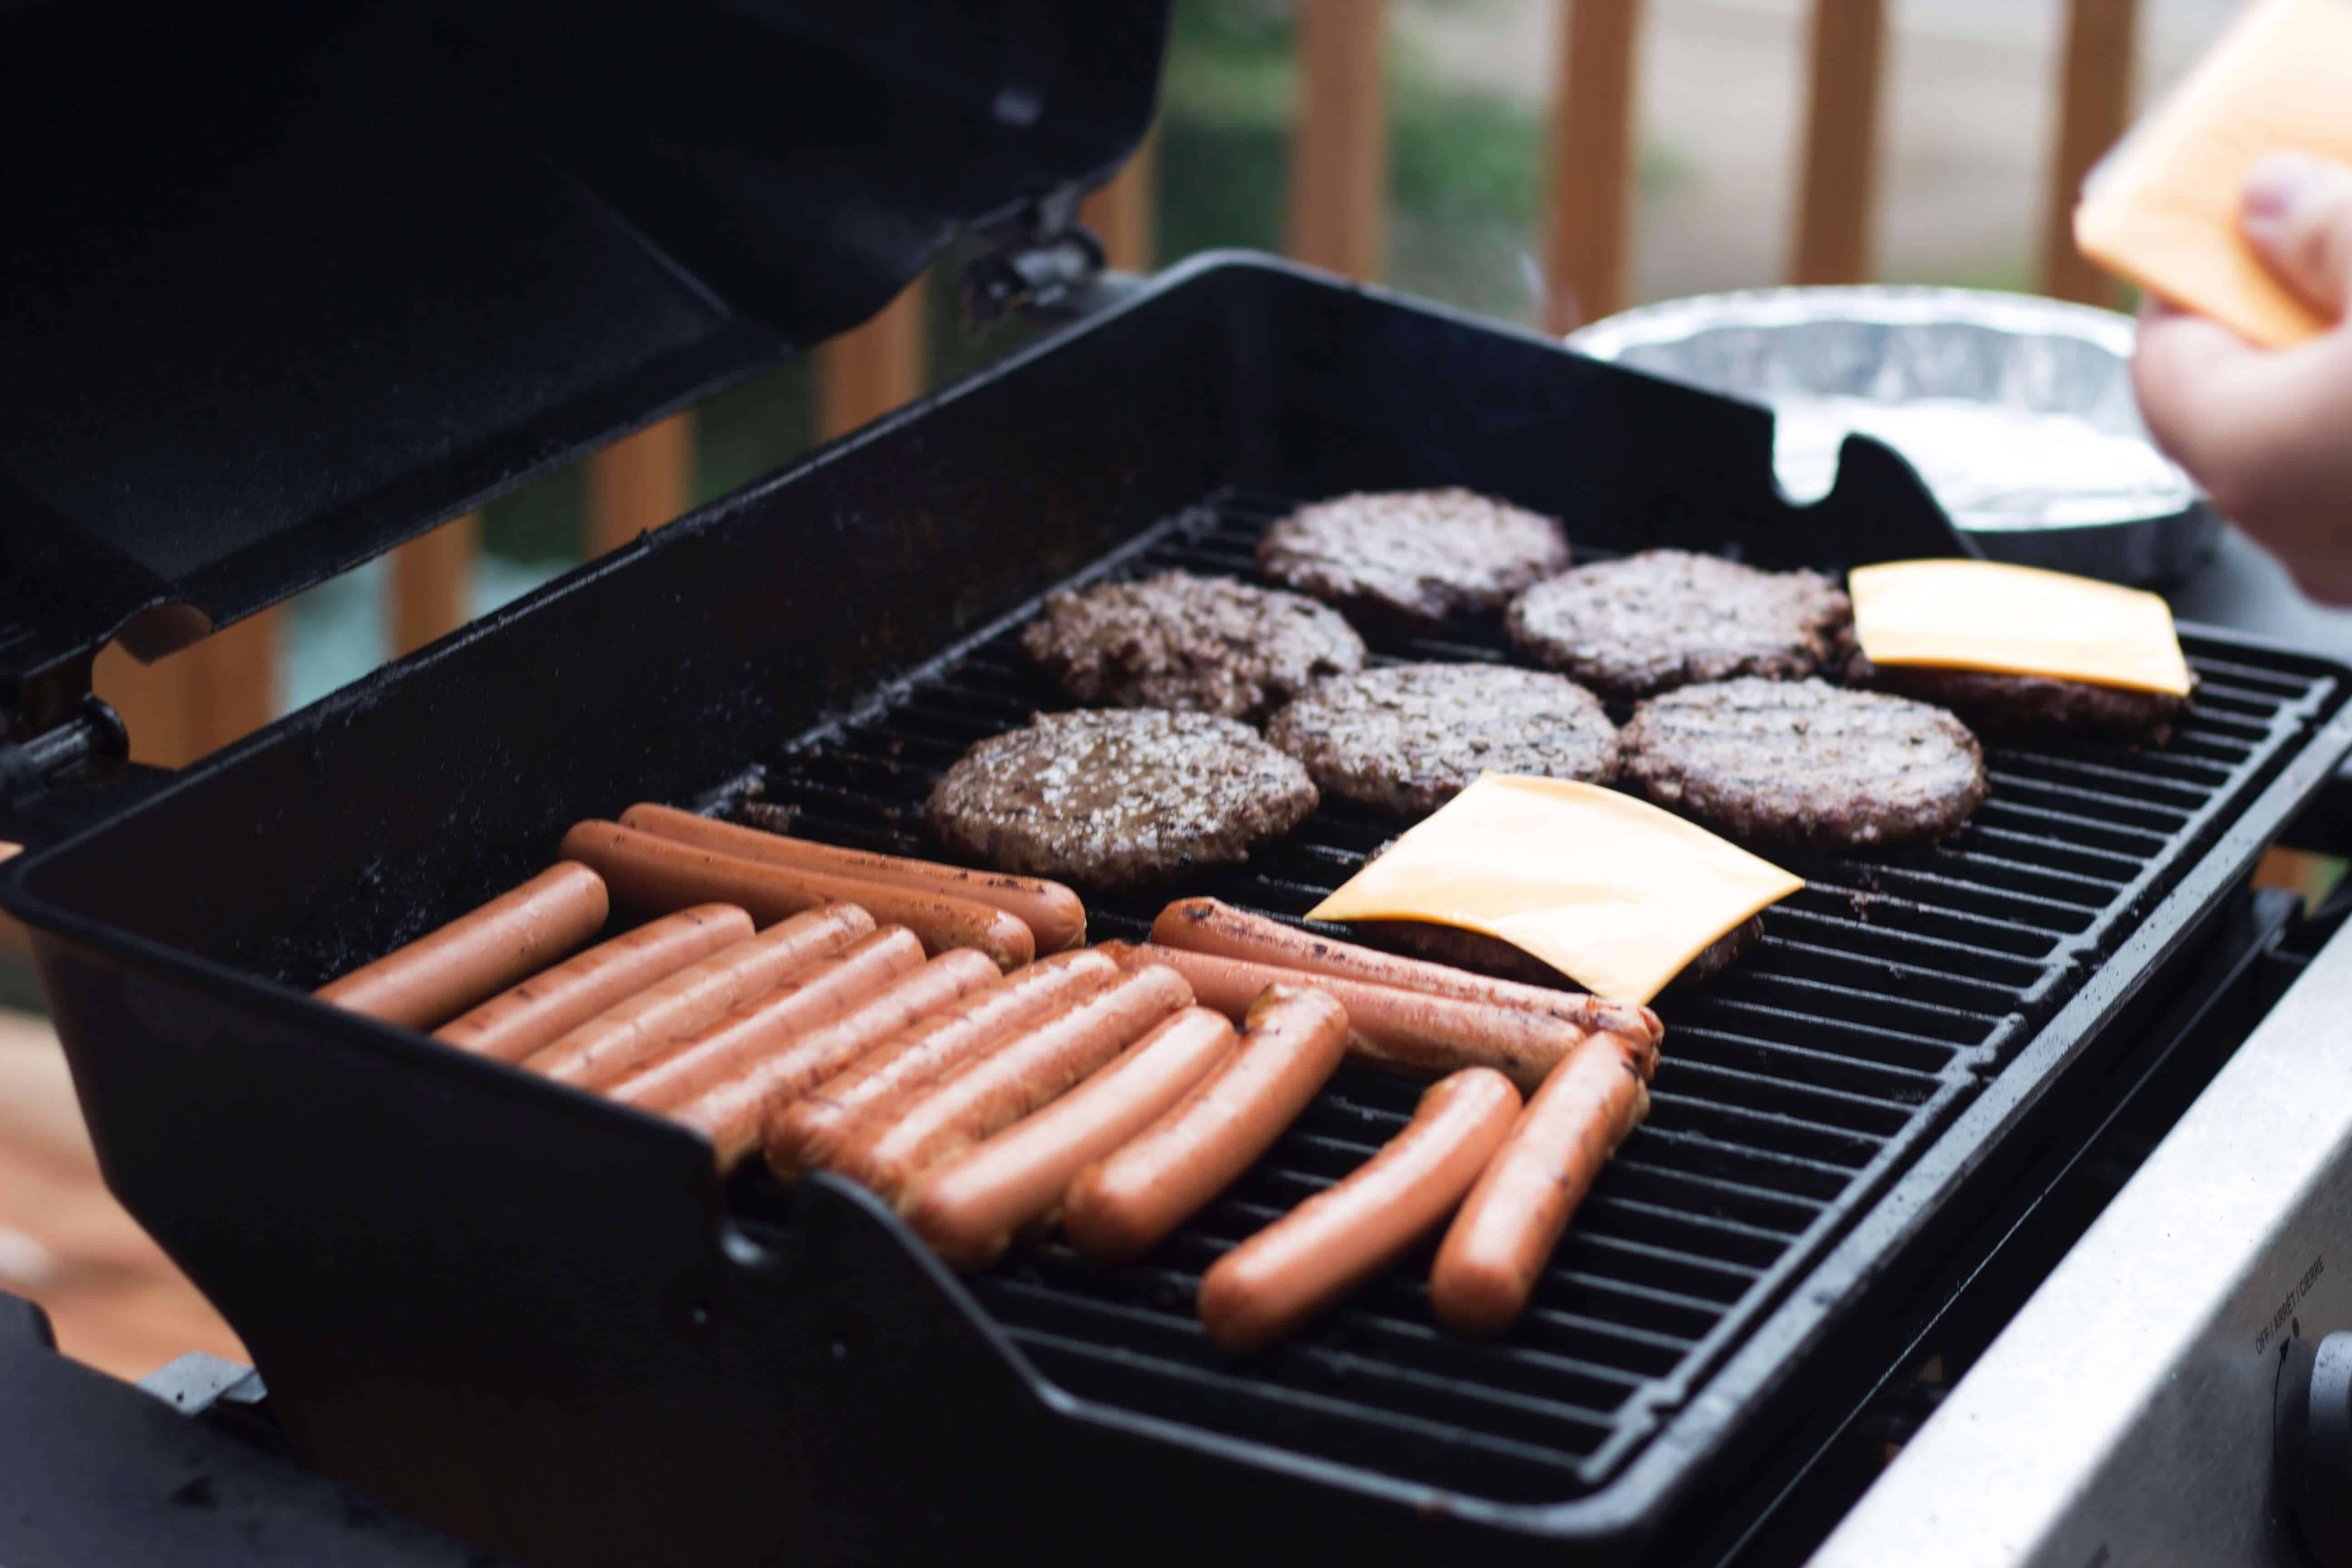 Hot dogs and hamburgers on grill